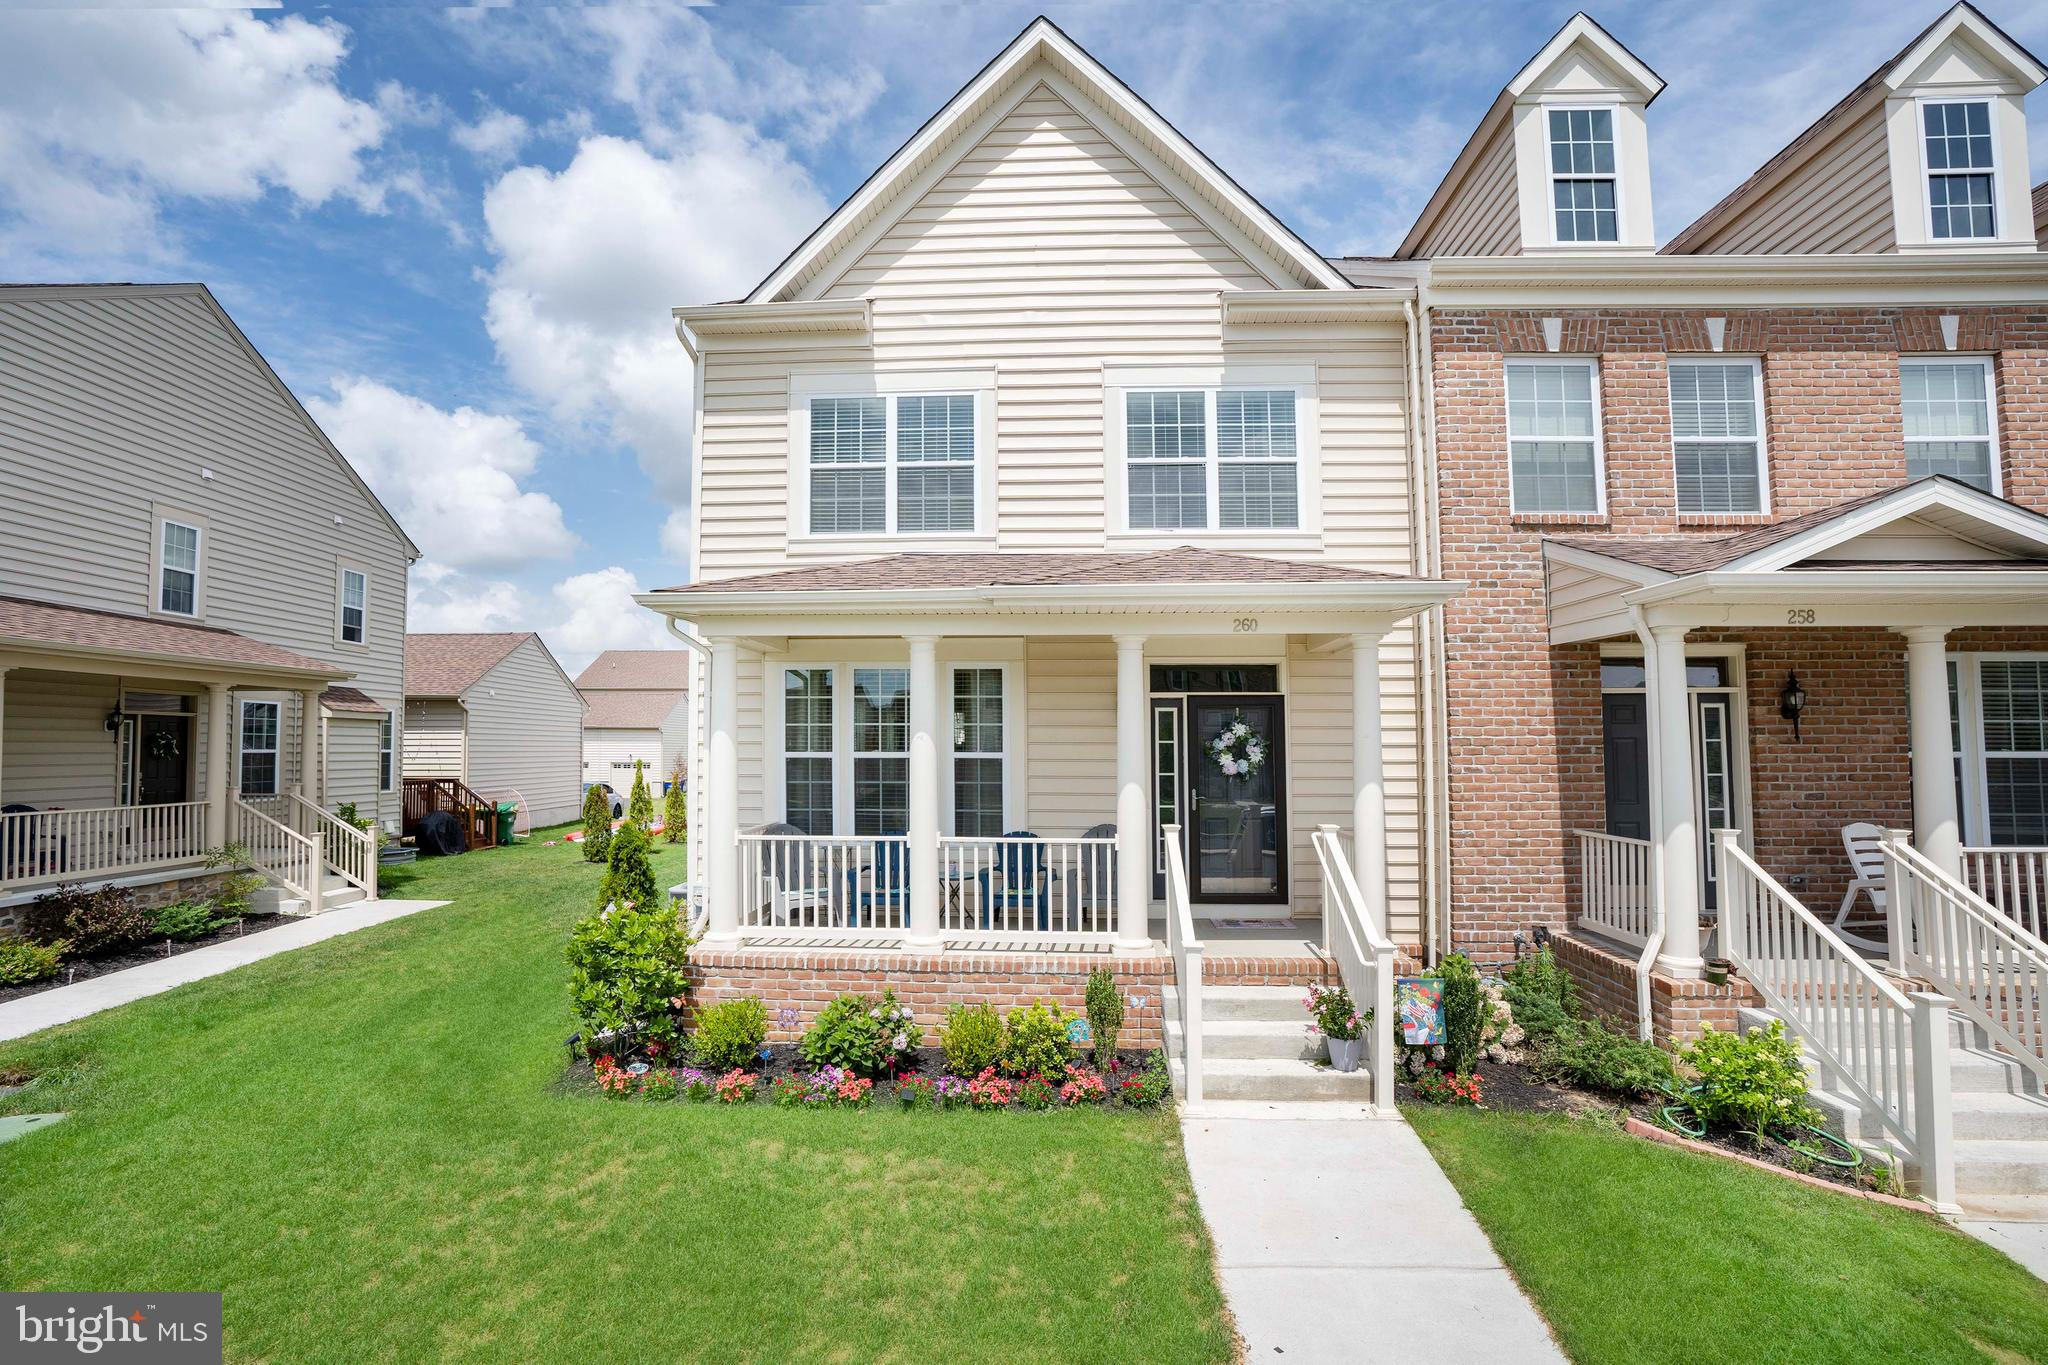 """**Highest and Final Deadline 7/14 at 8pm** 1 Year Young End Unit Carriage Home in the highly desirable Village of Bayberry North & award winning Appoquinimink School District. This stunning 3 Bedroom, 2.5 Bathroom home with rear entry 2 car garage, finished basement and covered front porch offers ample space to grow. This property boasts an open concept floor plan on the first floor that has been recently professionally painted. The kitchen, adjacent to your spacious dining area, features stylish 42"""" cabinets with crown moulding, a large island and stainless steel appliances including a new refrigerator and recessed & pendent lighting to provide  plenty of light when serving up delicious meals for family and friends. Upstairs you will find the amply sized owner's retreat complete with walk in closet and a full bathroom with dual sinks. The 2nd level also features 2 additional generously sized bedrooms, another full bathroom, linen closet and 2nd floor laundry. The fully finished basement is perfect for watching the big game, having that home office, craft room or children's play space. Outside you will find a fully landscaped yard with new entry steps and enough space to enjoy, but not too much to take care of. The community offers plenty of walking paths, multiple community parks and a lake house situated on the bank of the community lake stocked with fish ready for you to cast from the shore or your kayak. Conveniently located to Rt 1, Rt 13, 301 and 896 this home and community offers everything you are looking for. Be sure to add this home to your tour today!"""